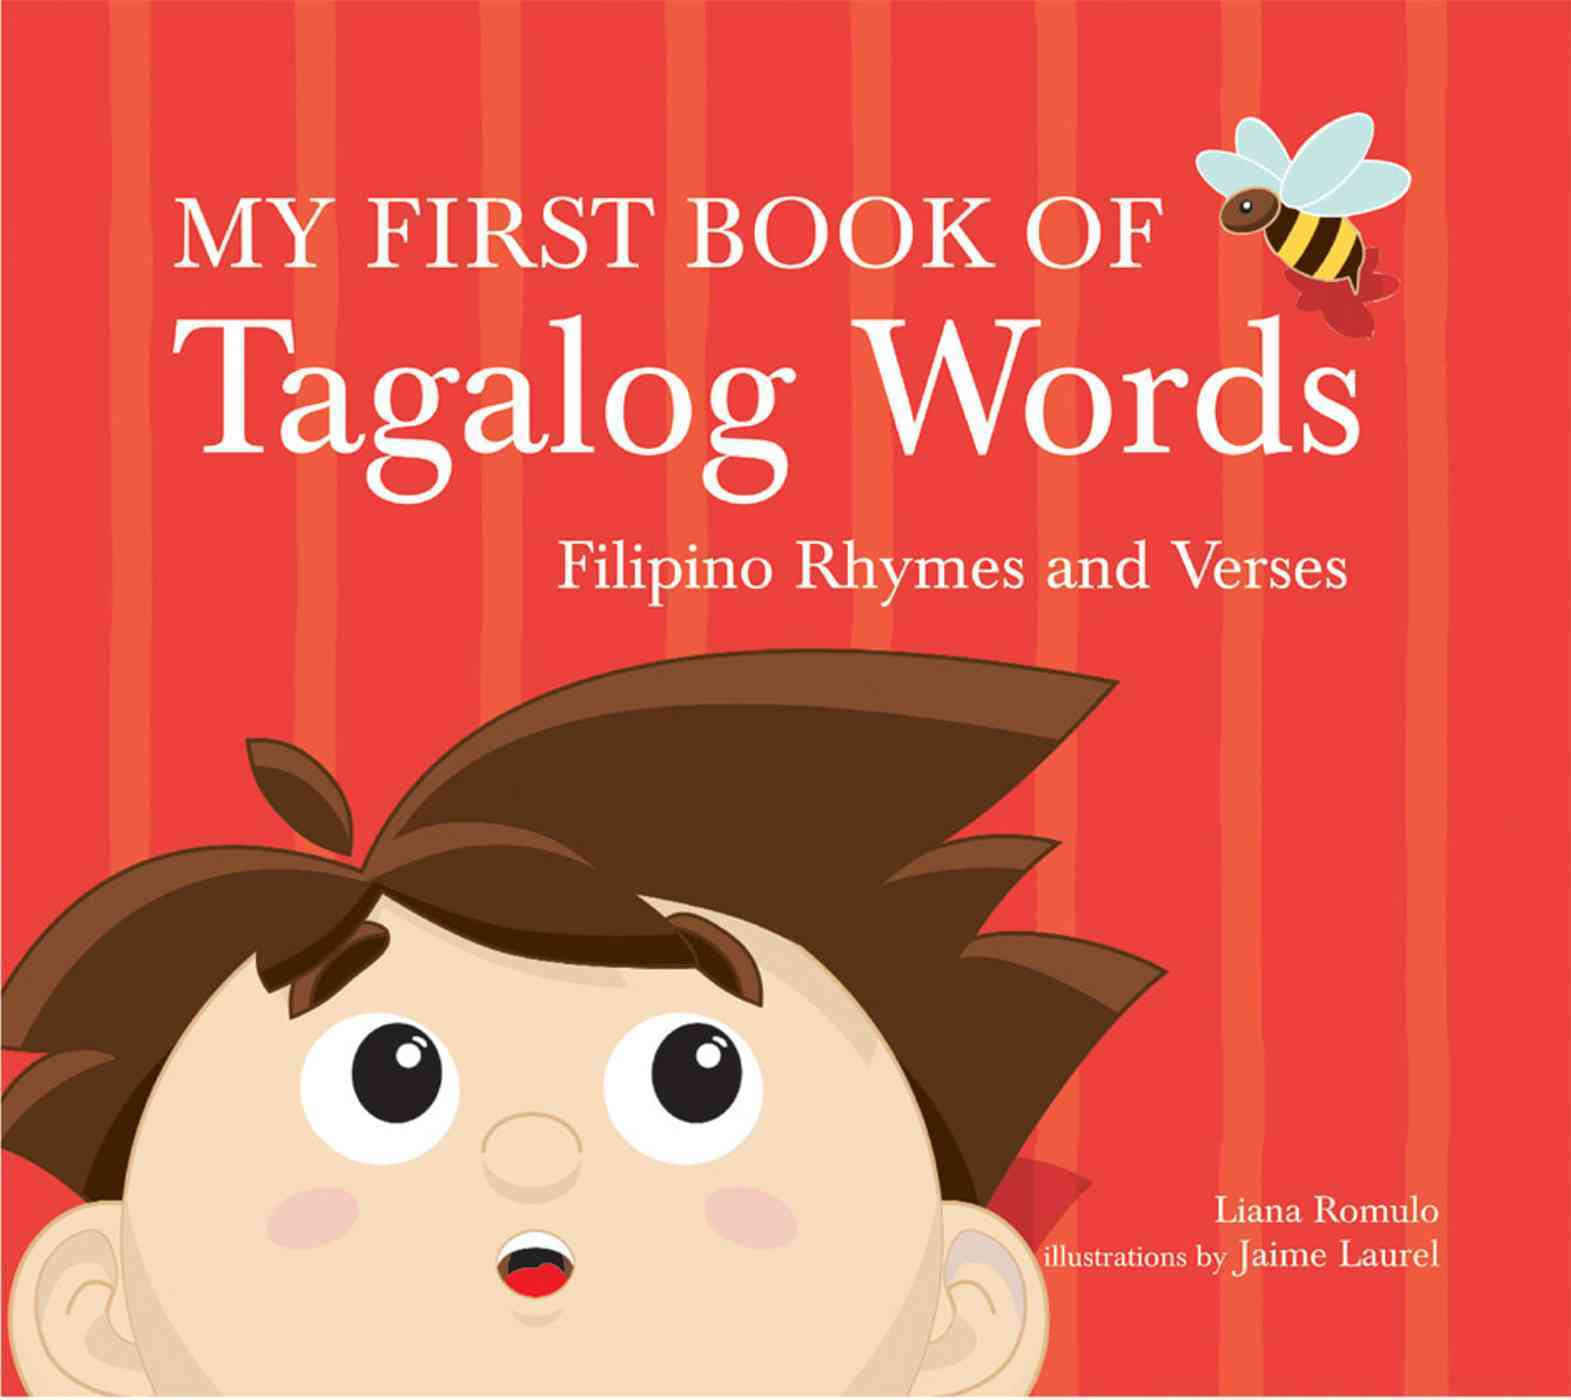 My First Book of Tagalog Words By Romulo, Liana/ Laurel, Jaime M. (ILT)